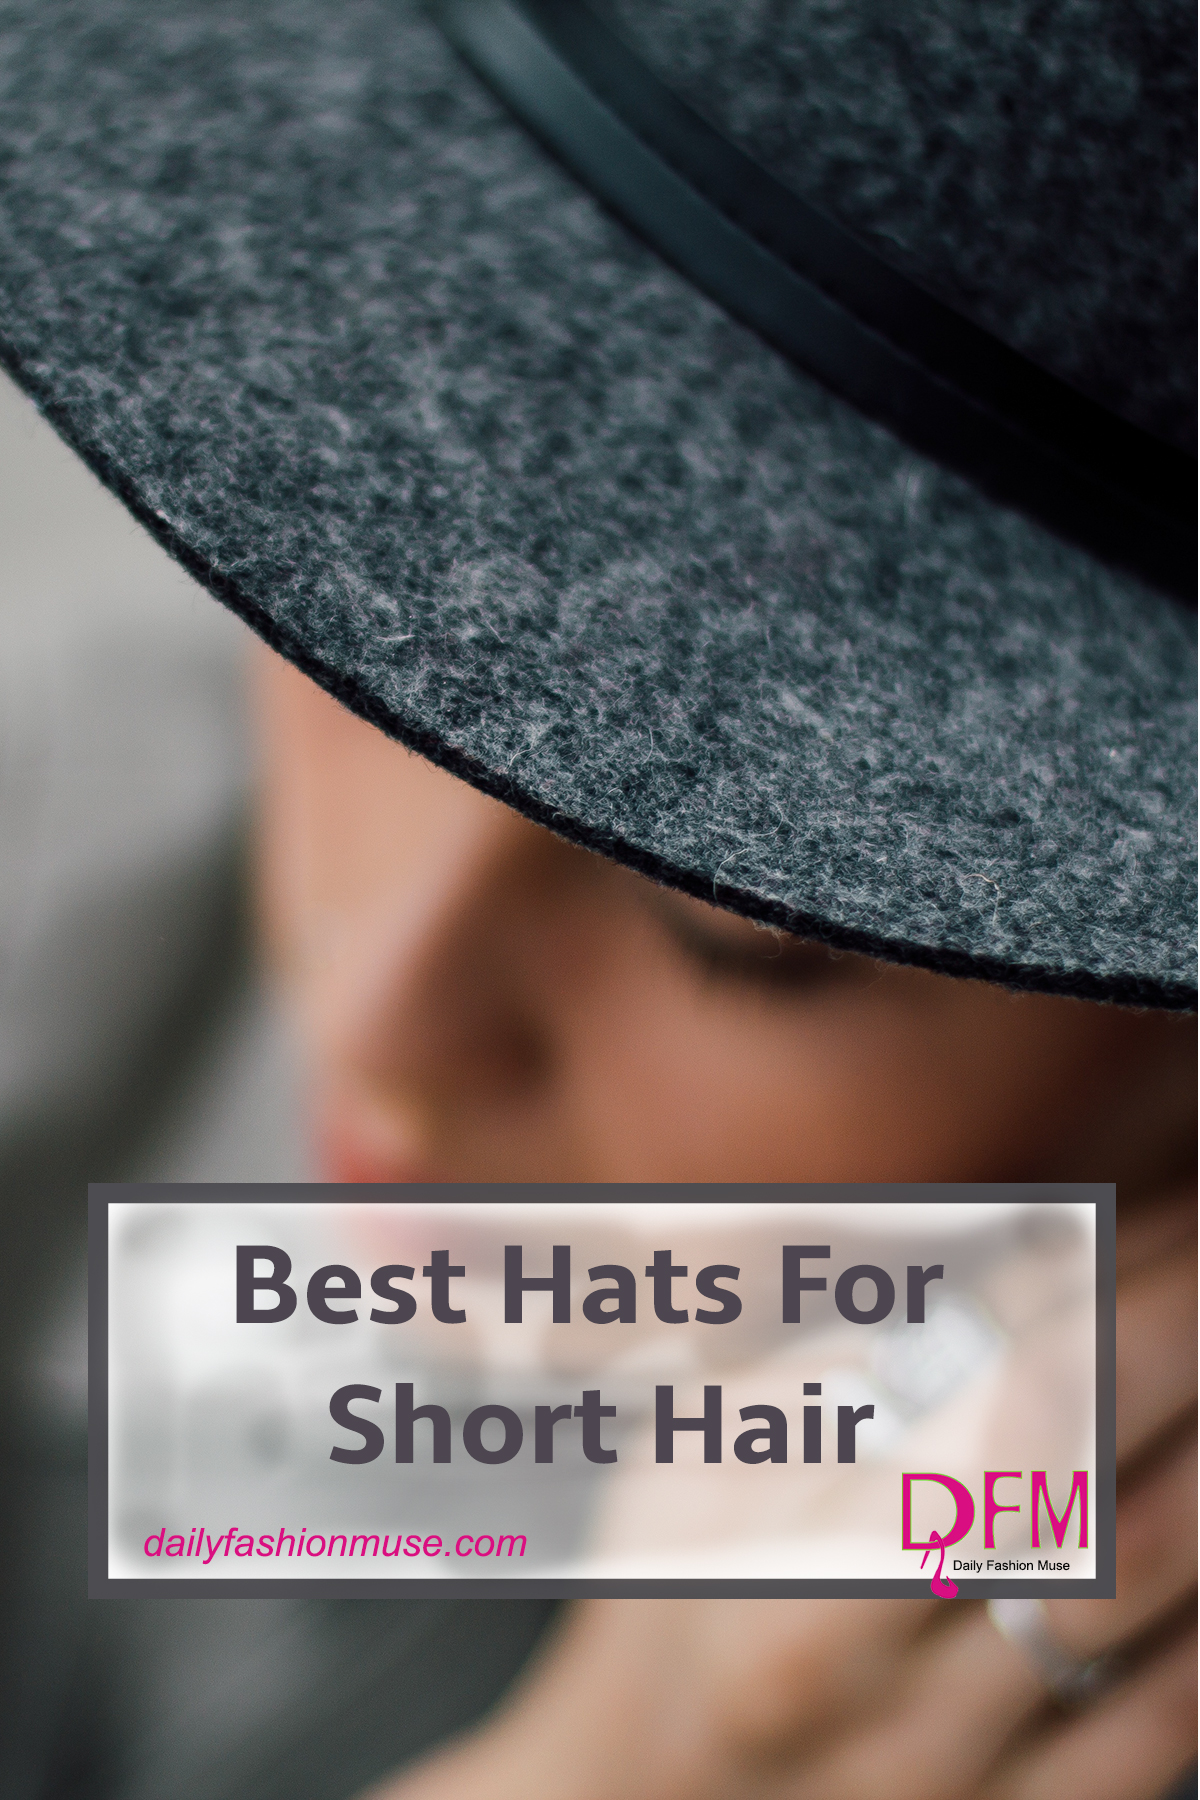 Struggling to find just the right hat for short hair? In this post I discuss several options and why they work. Click through to read.